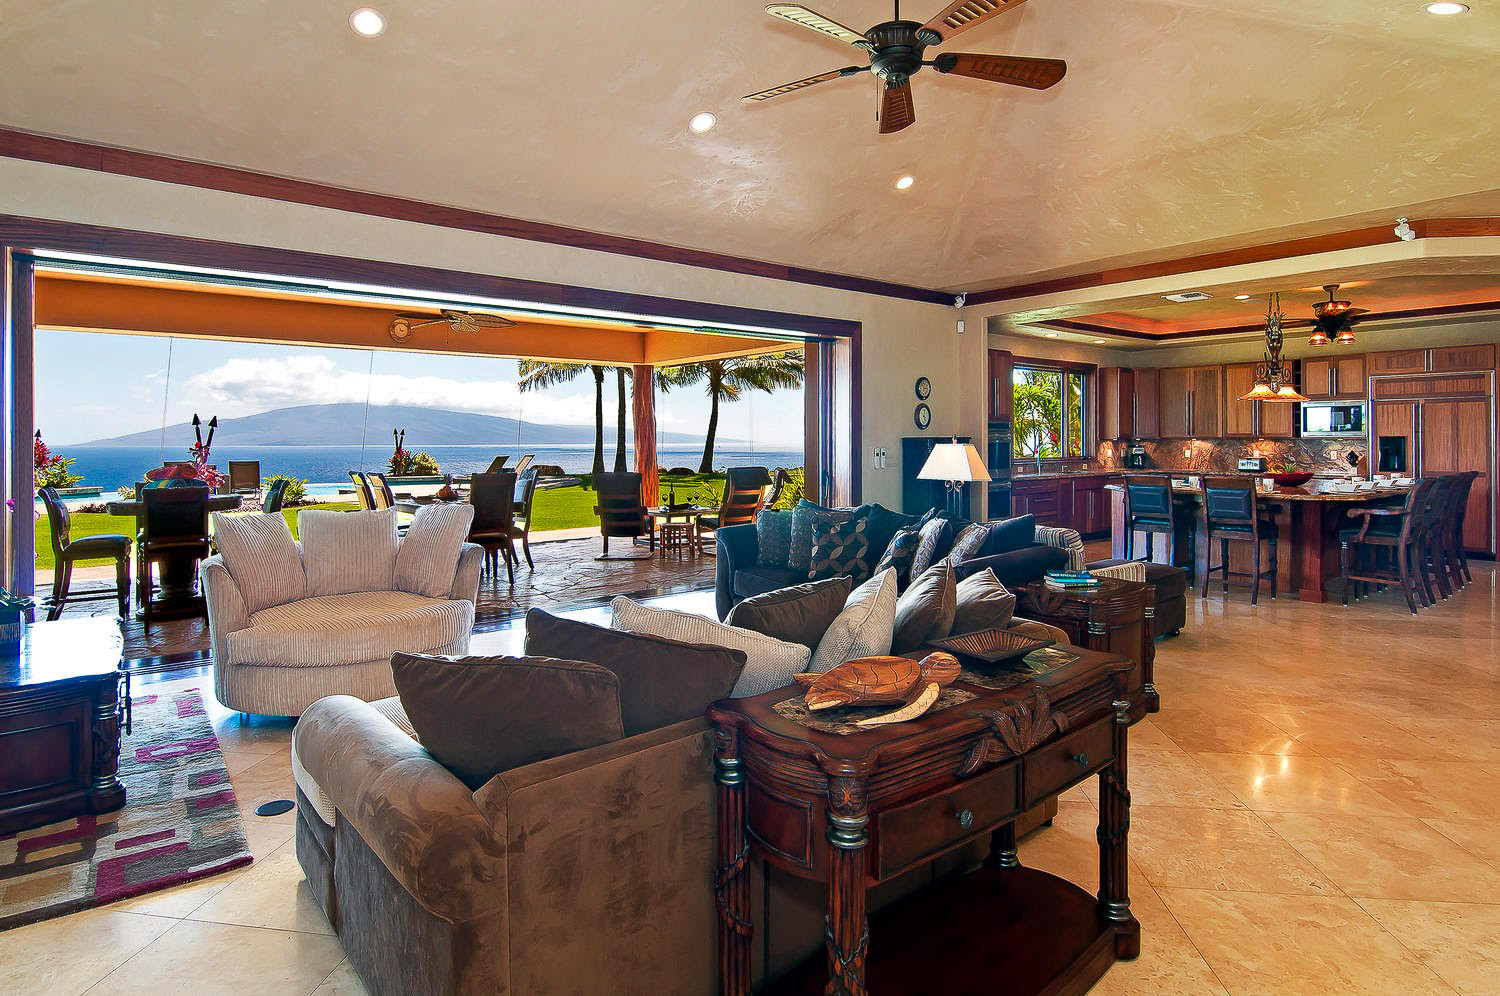 Pacific View 6 Bedroom 5 Bath Lahaina, Maui, Hawaii photo 16406068